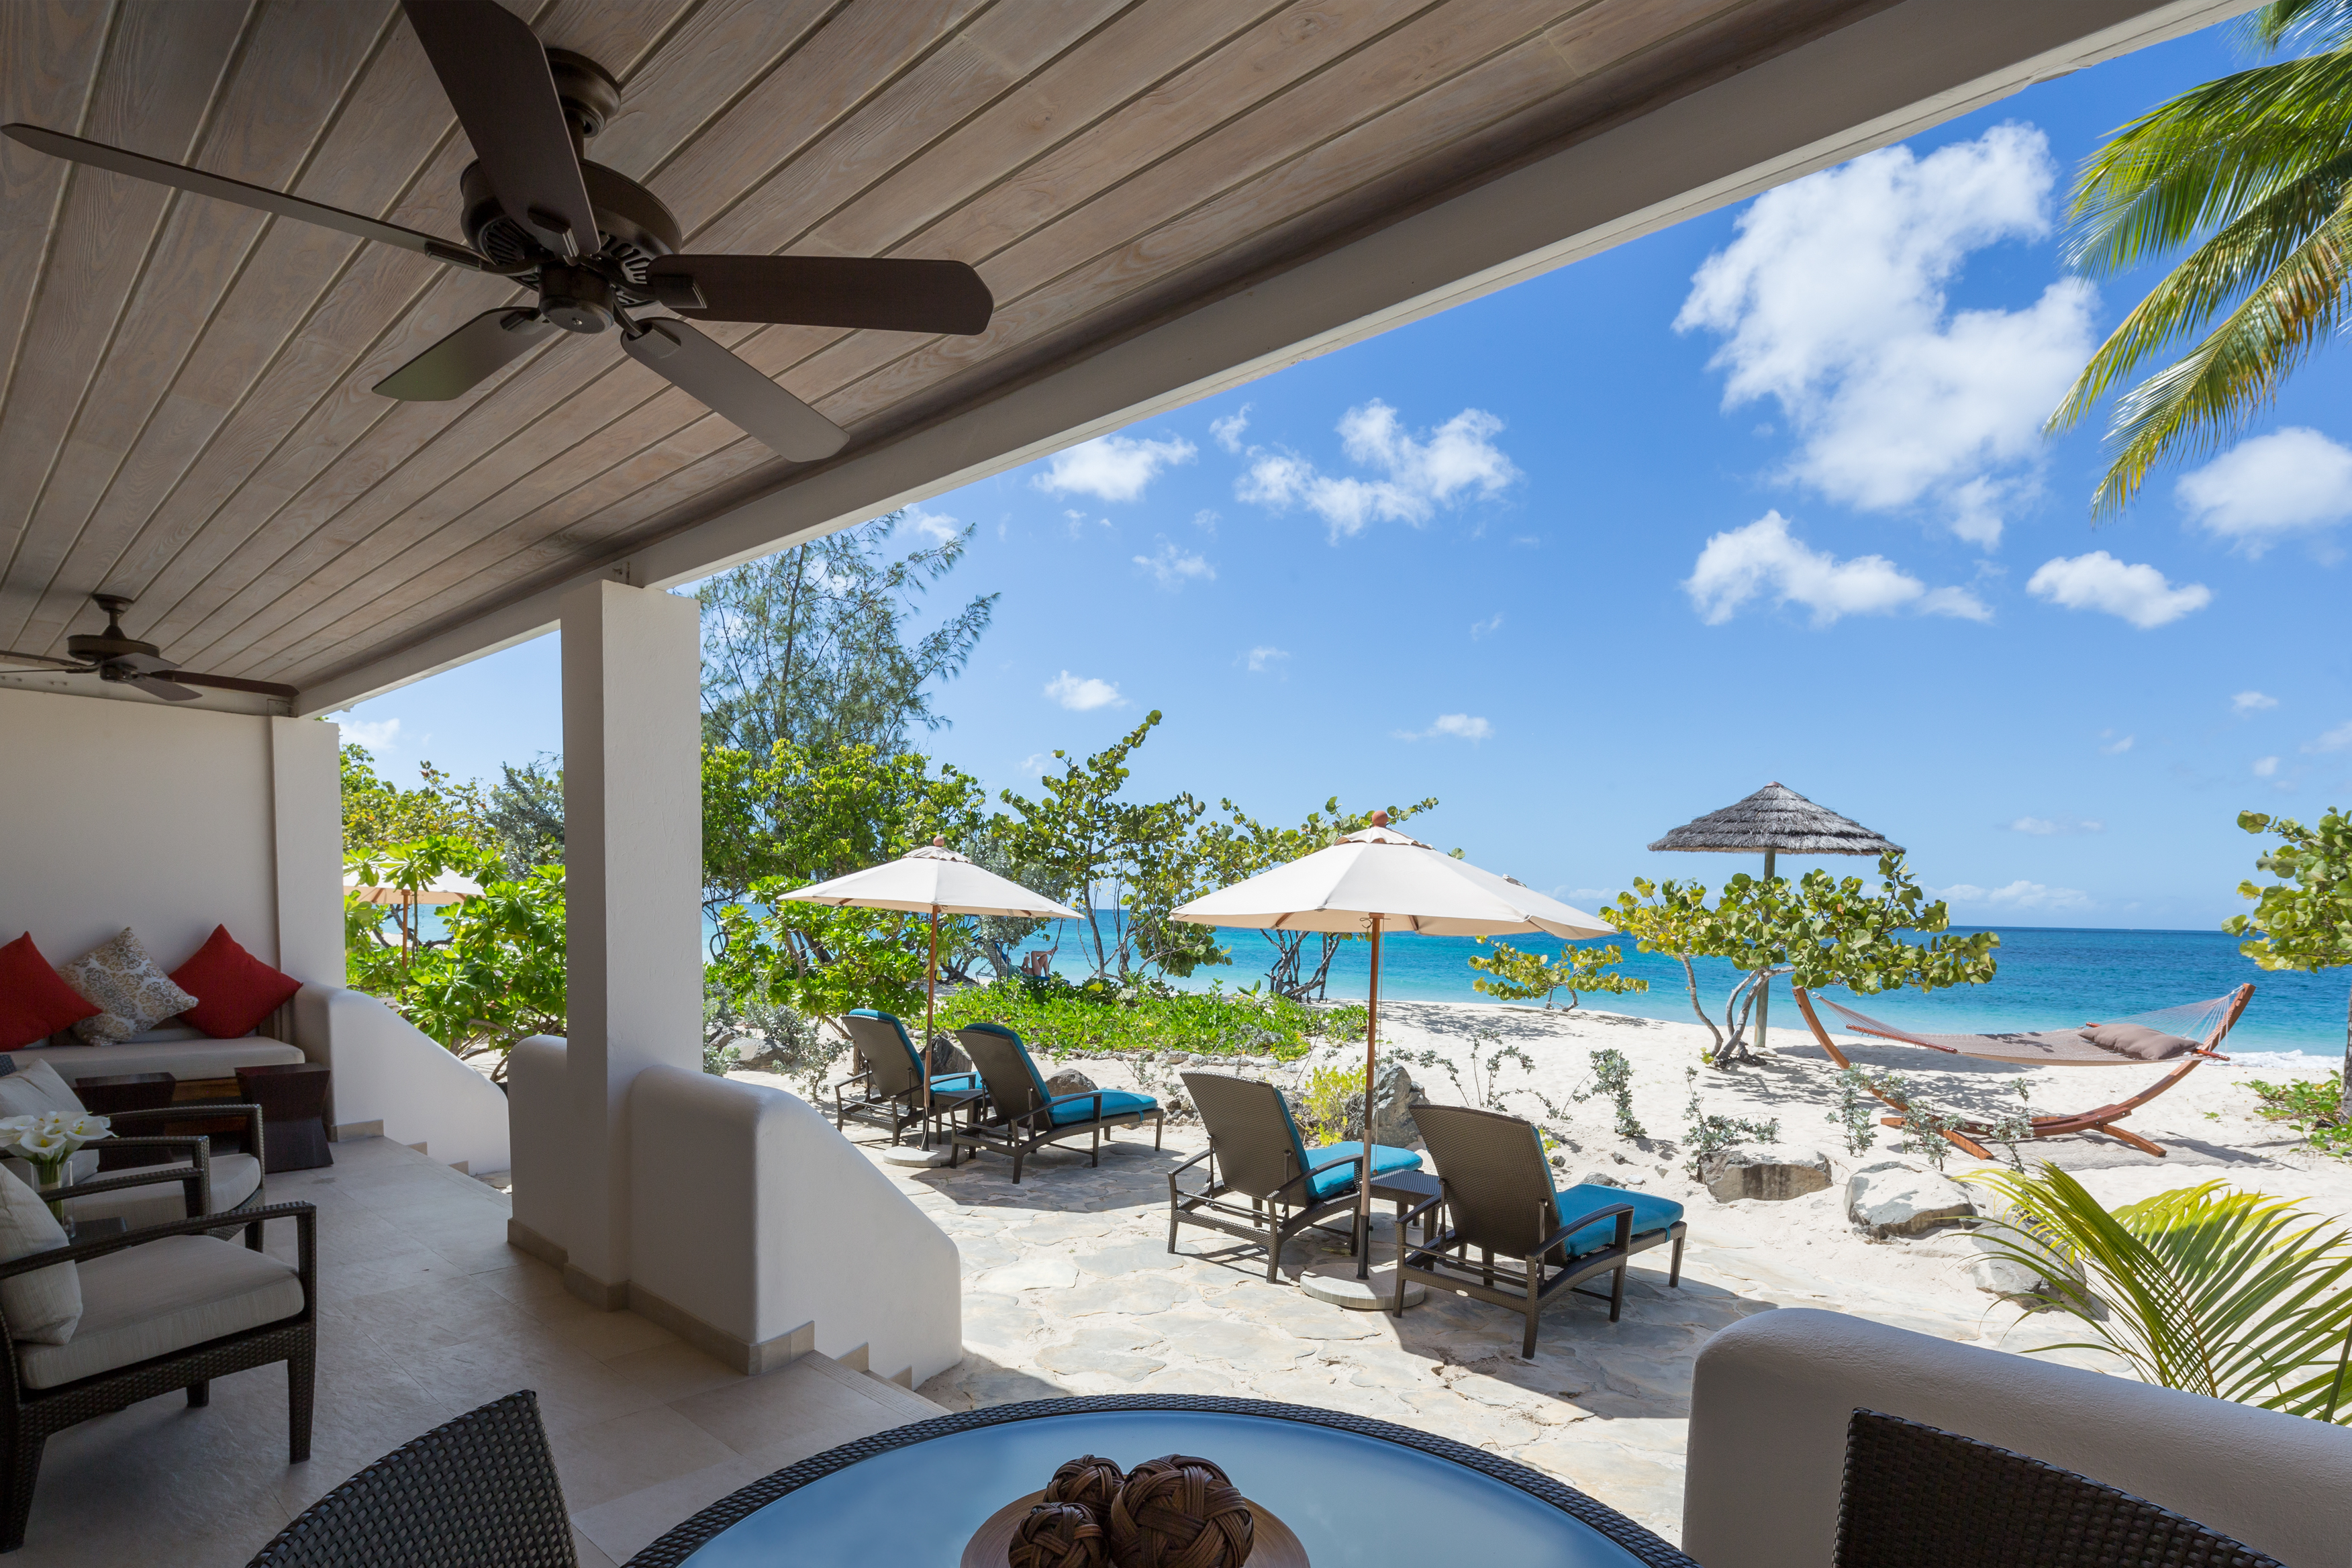 Travel Agency All-Inclusive Resort Spice Island Beach Resort 18